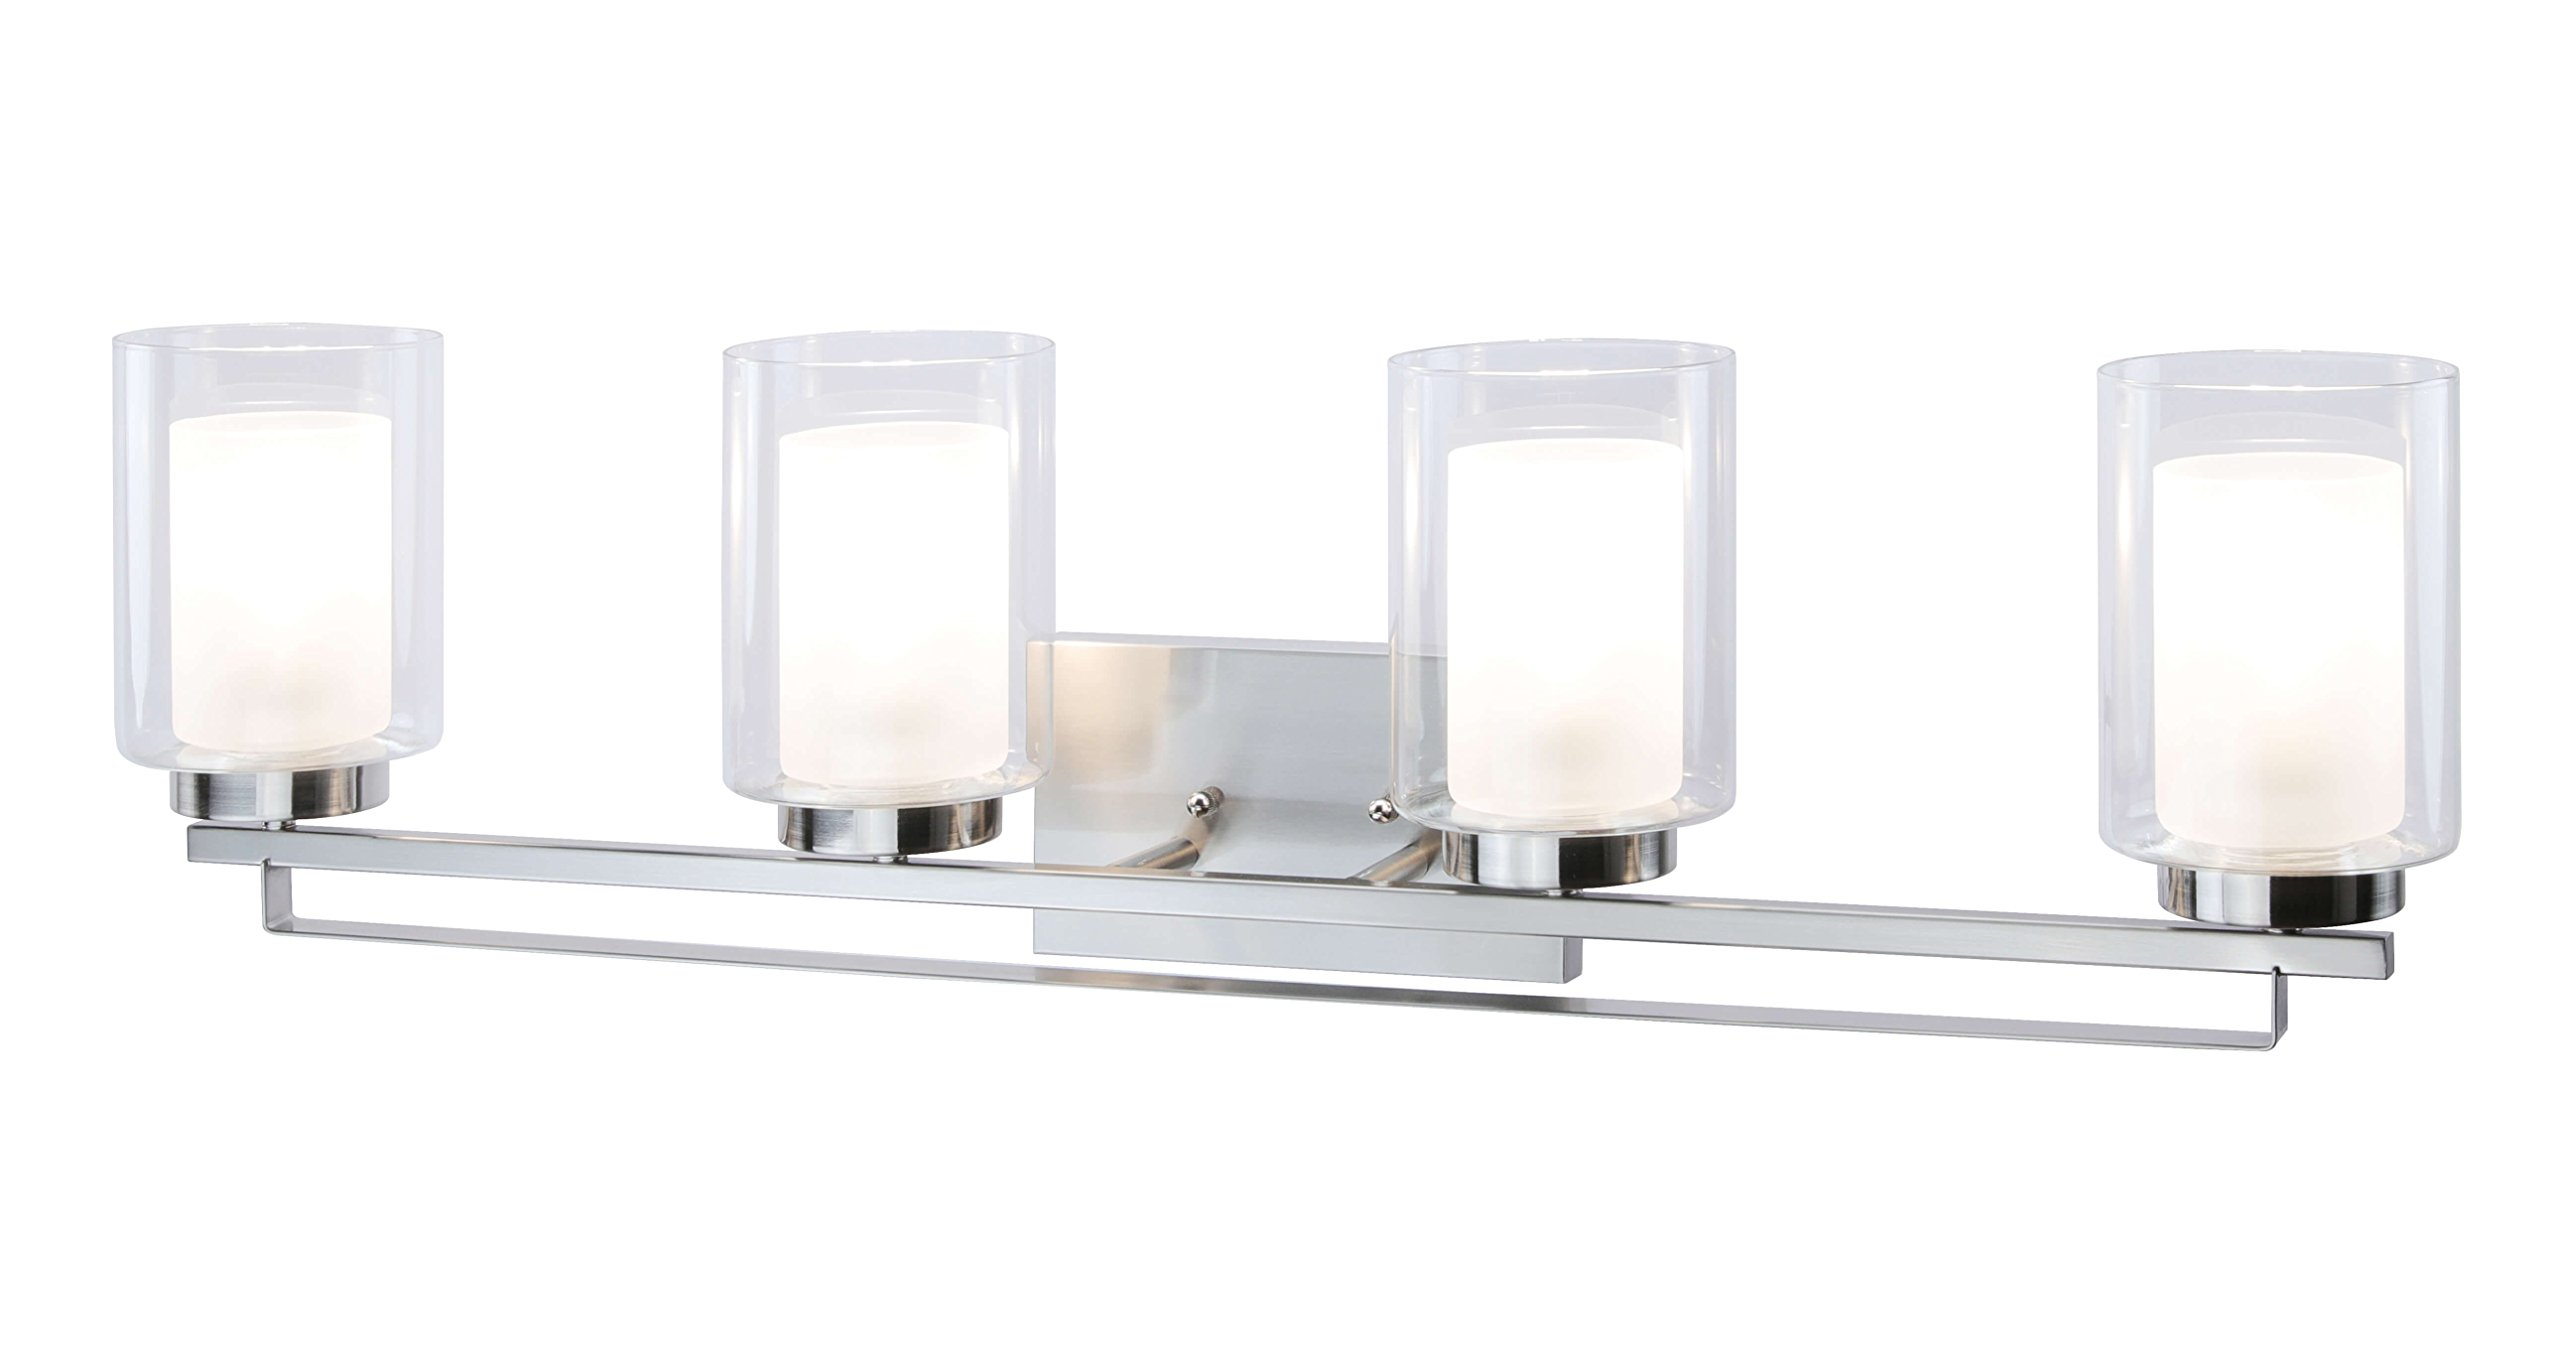 Wall Light 4 Light Bathroom Vanity Lighting with Dual Glass Shade in Brushed Nickel Indoor Modern Wall Mount Light for Bathroom & Kitchen XiNBEi-Lighting XB-W1195-4-BN by XiNBEi Lighting (Image #4)